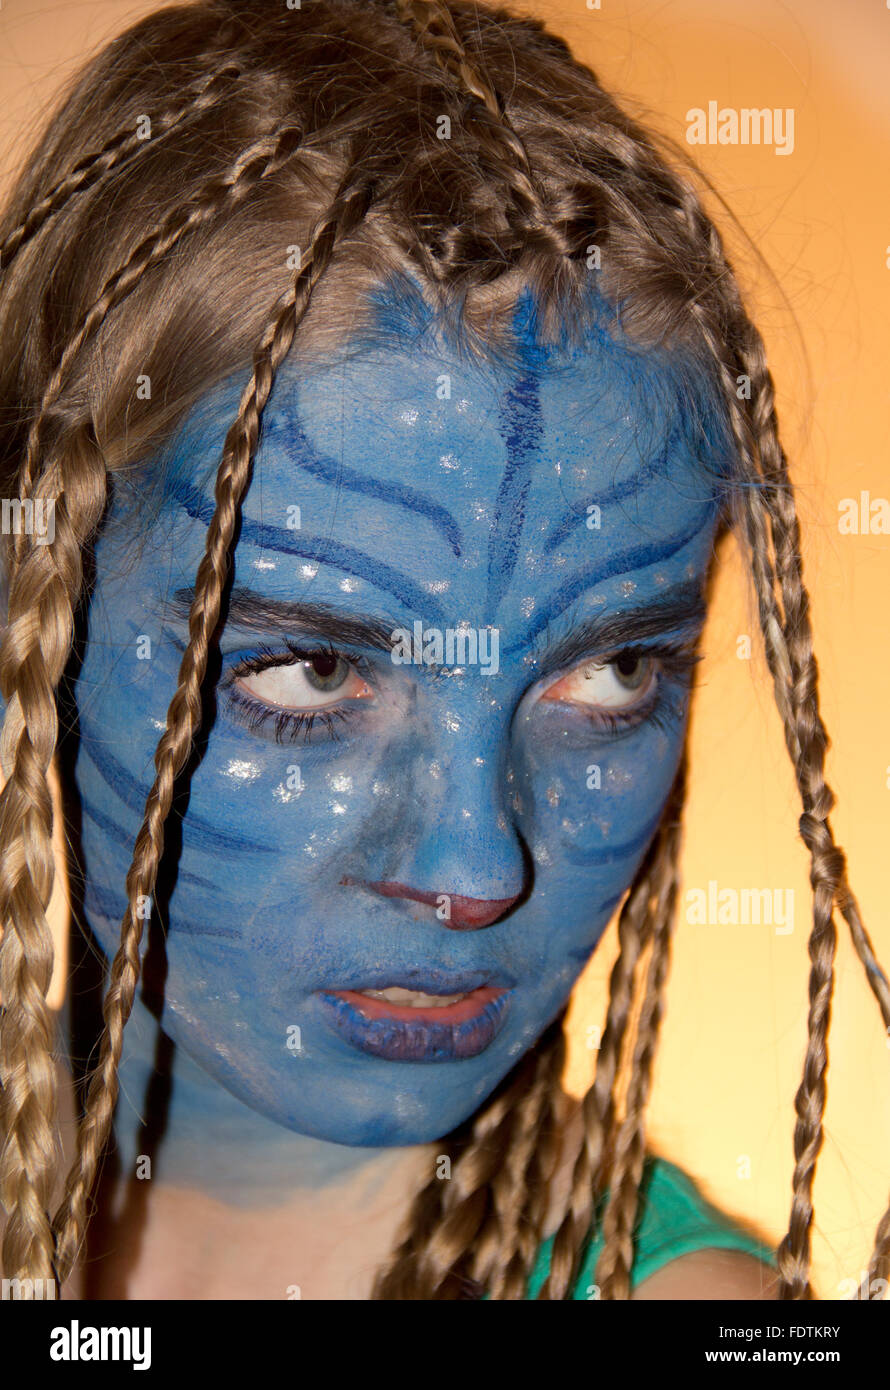 Berlin, Germany, Girl makeup like in the movie Avatar - Stock Image